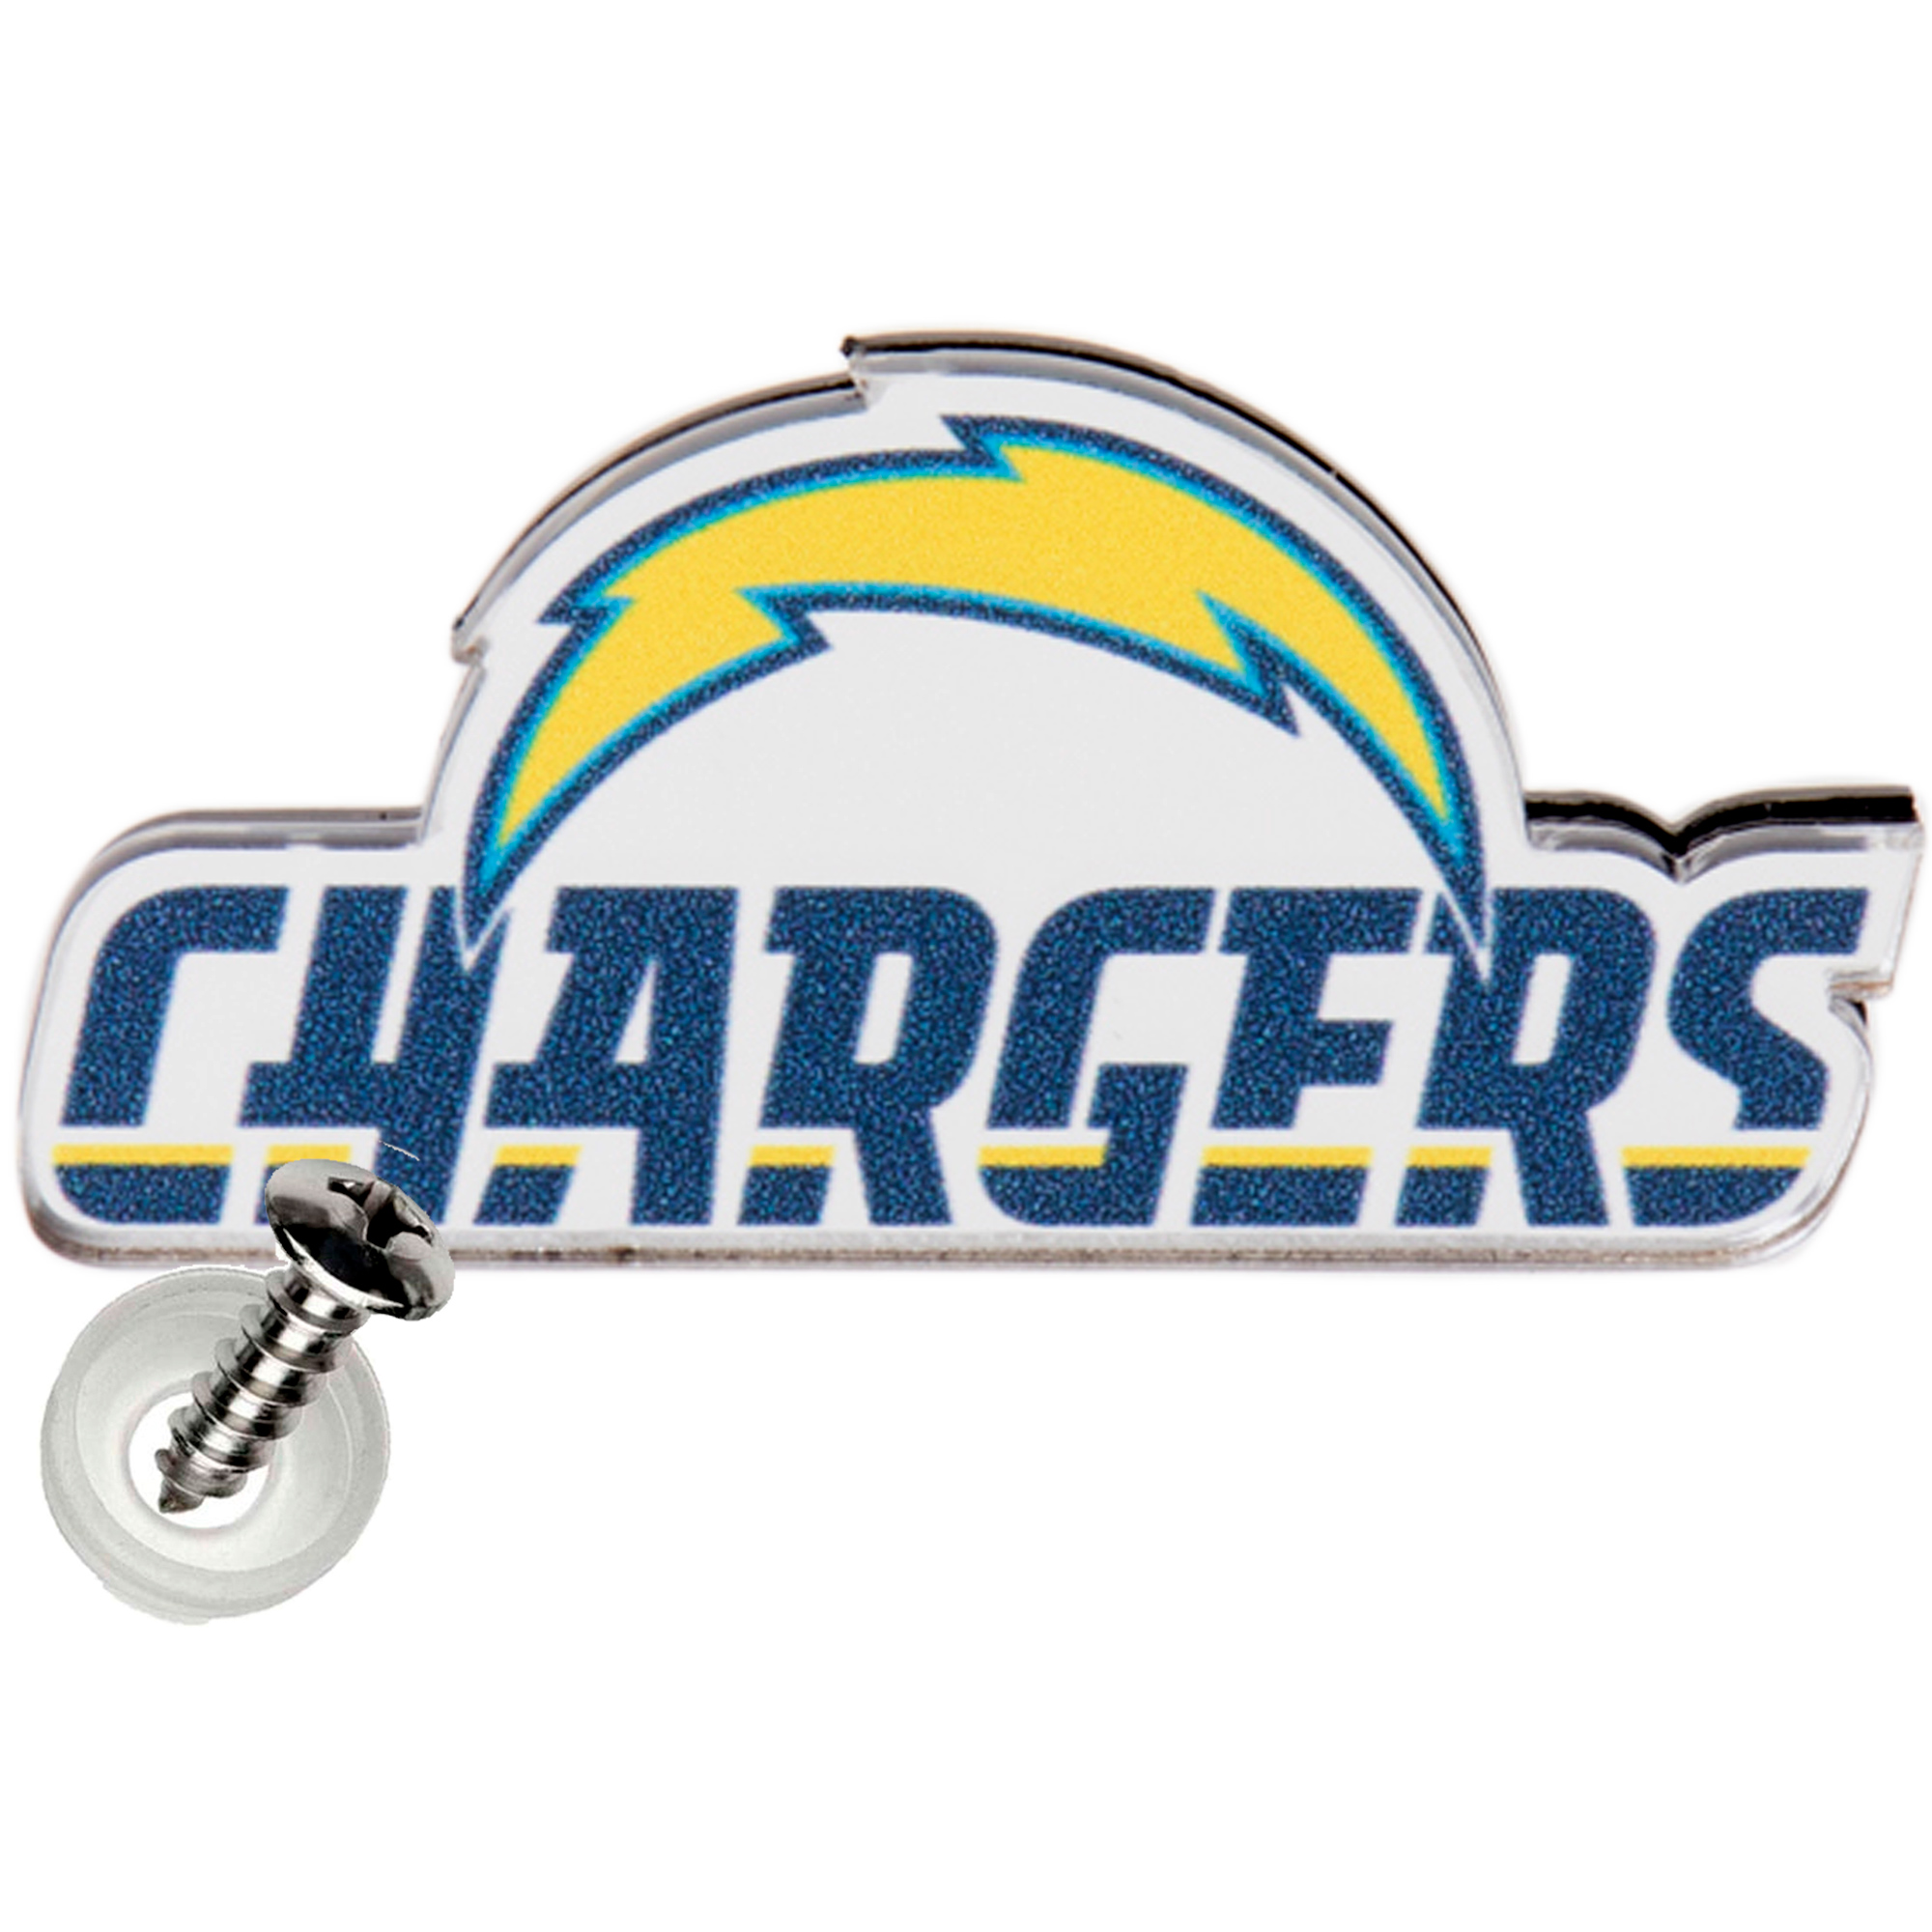 Los Angeles Chargers Acrylic License Plate Screw Cover - No Size